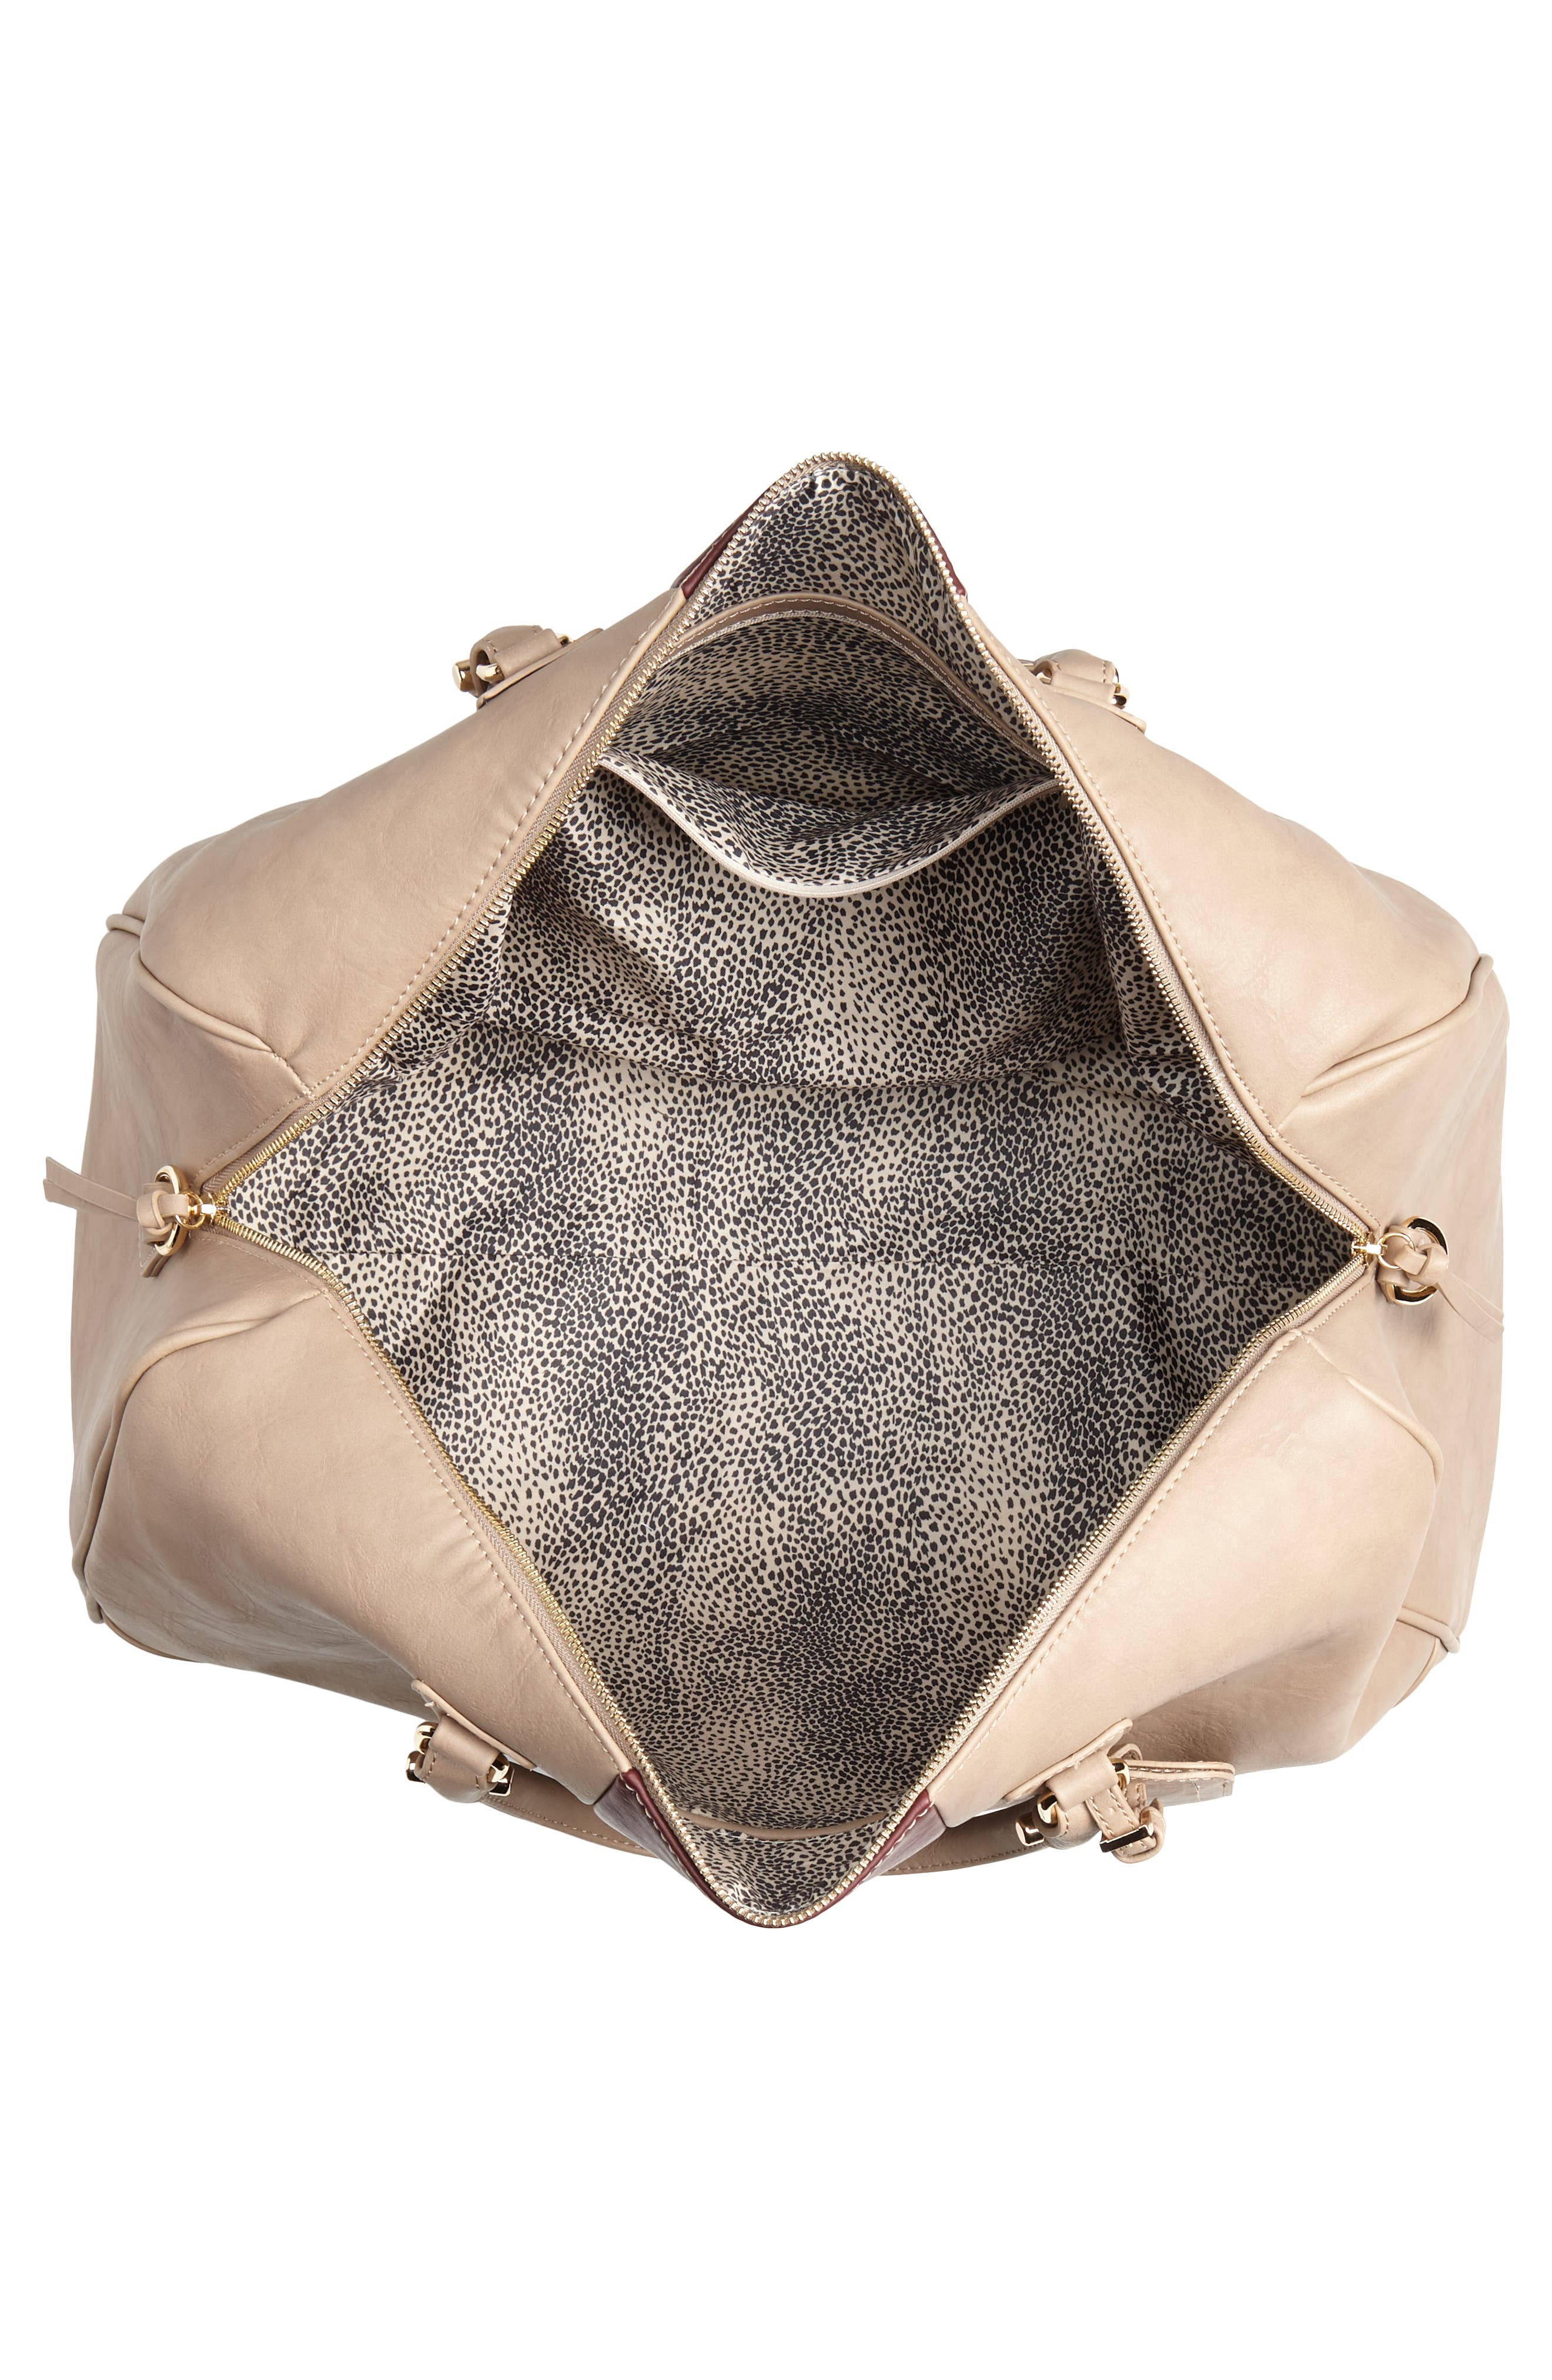 'Robin' Faux Leather Weekend Bag,                             Alternate thumbnail 4, color,                             TAUPE